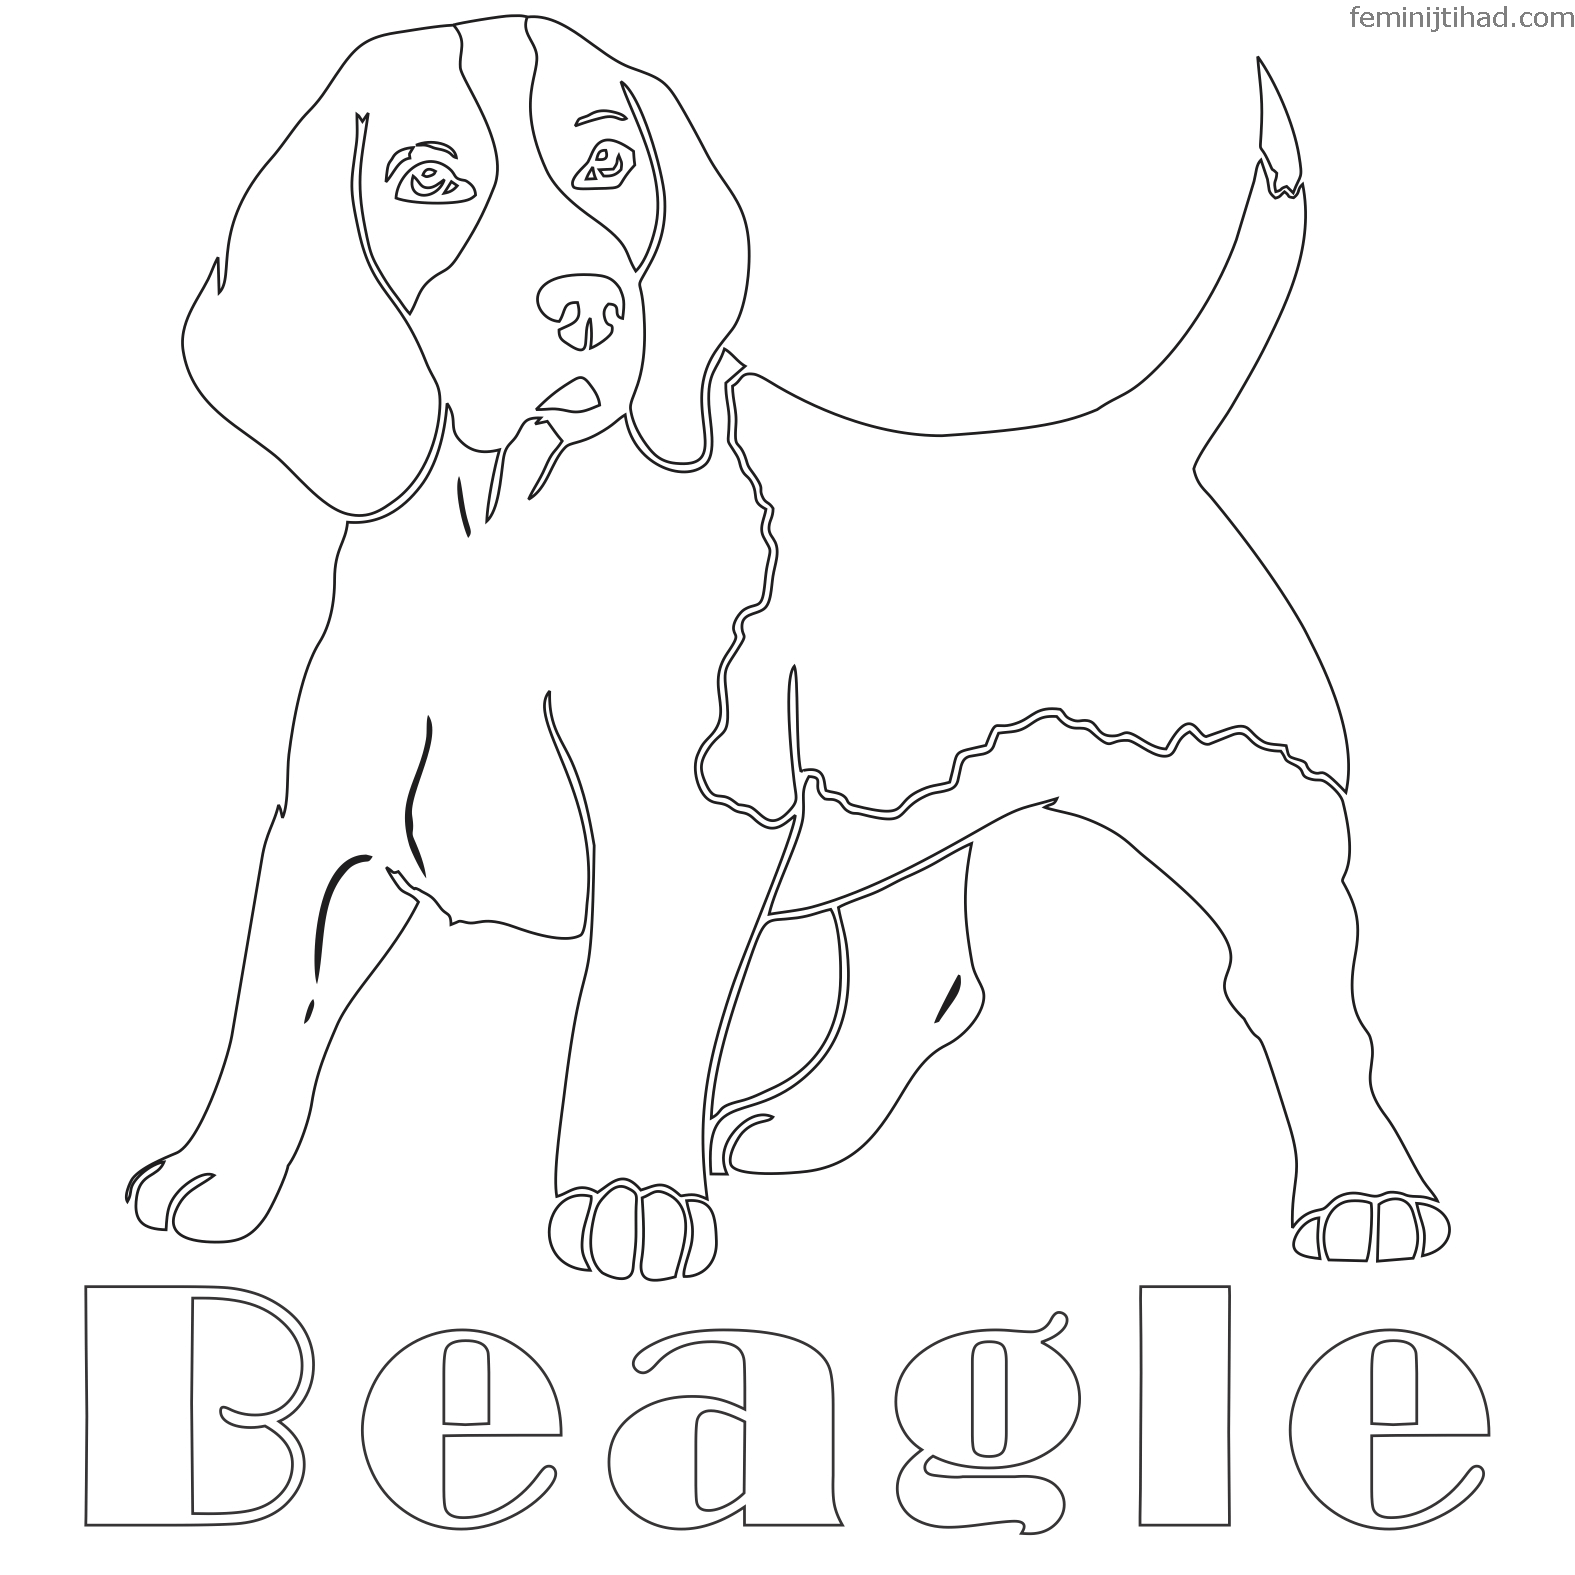 beagle coloring pages beagle coloring pages to download and print for free beagle coloring pages 1 1